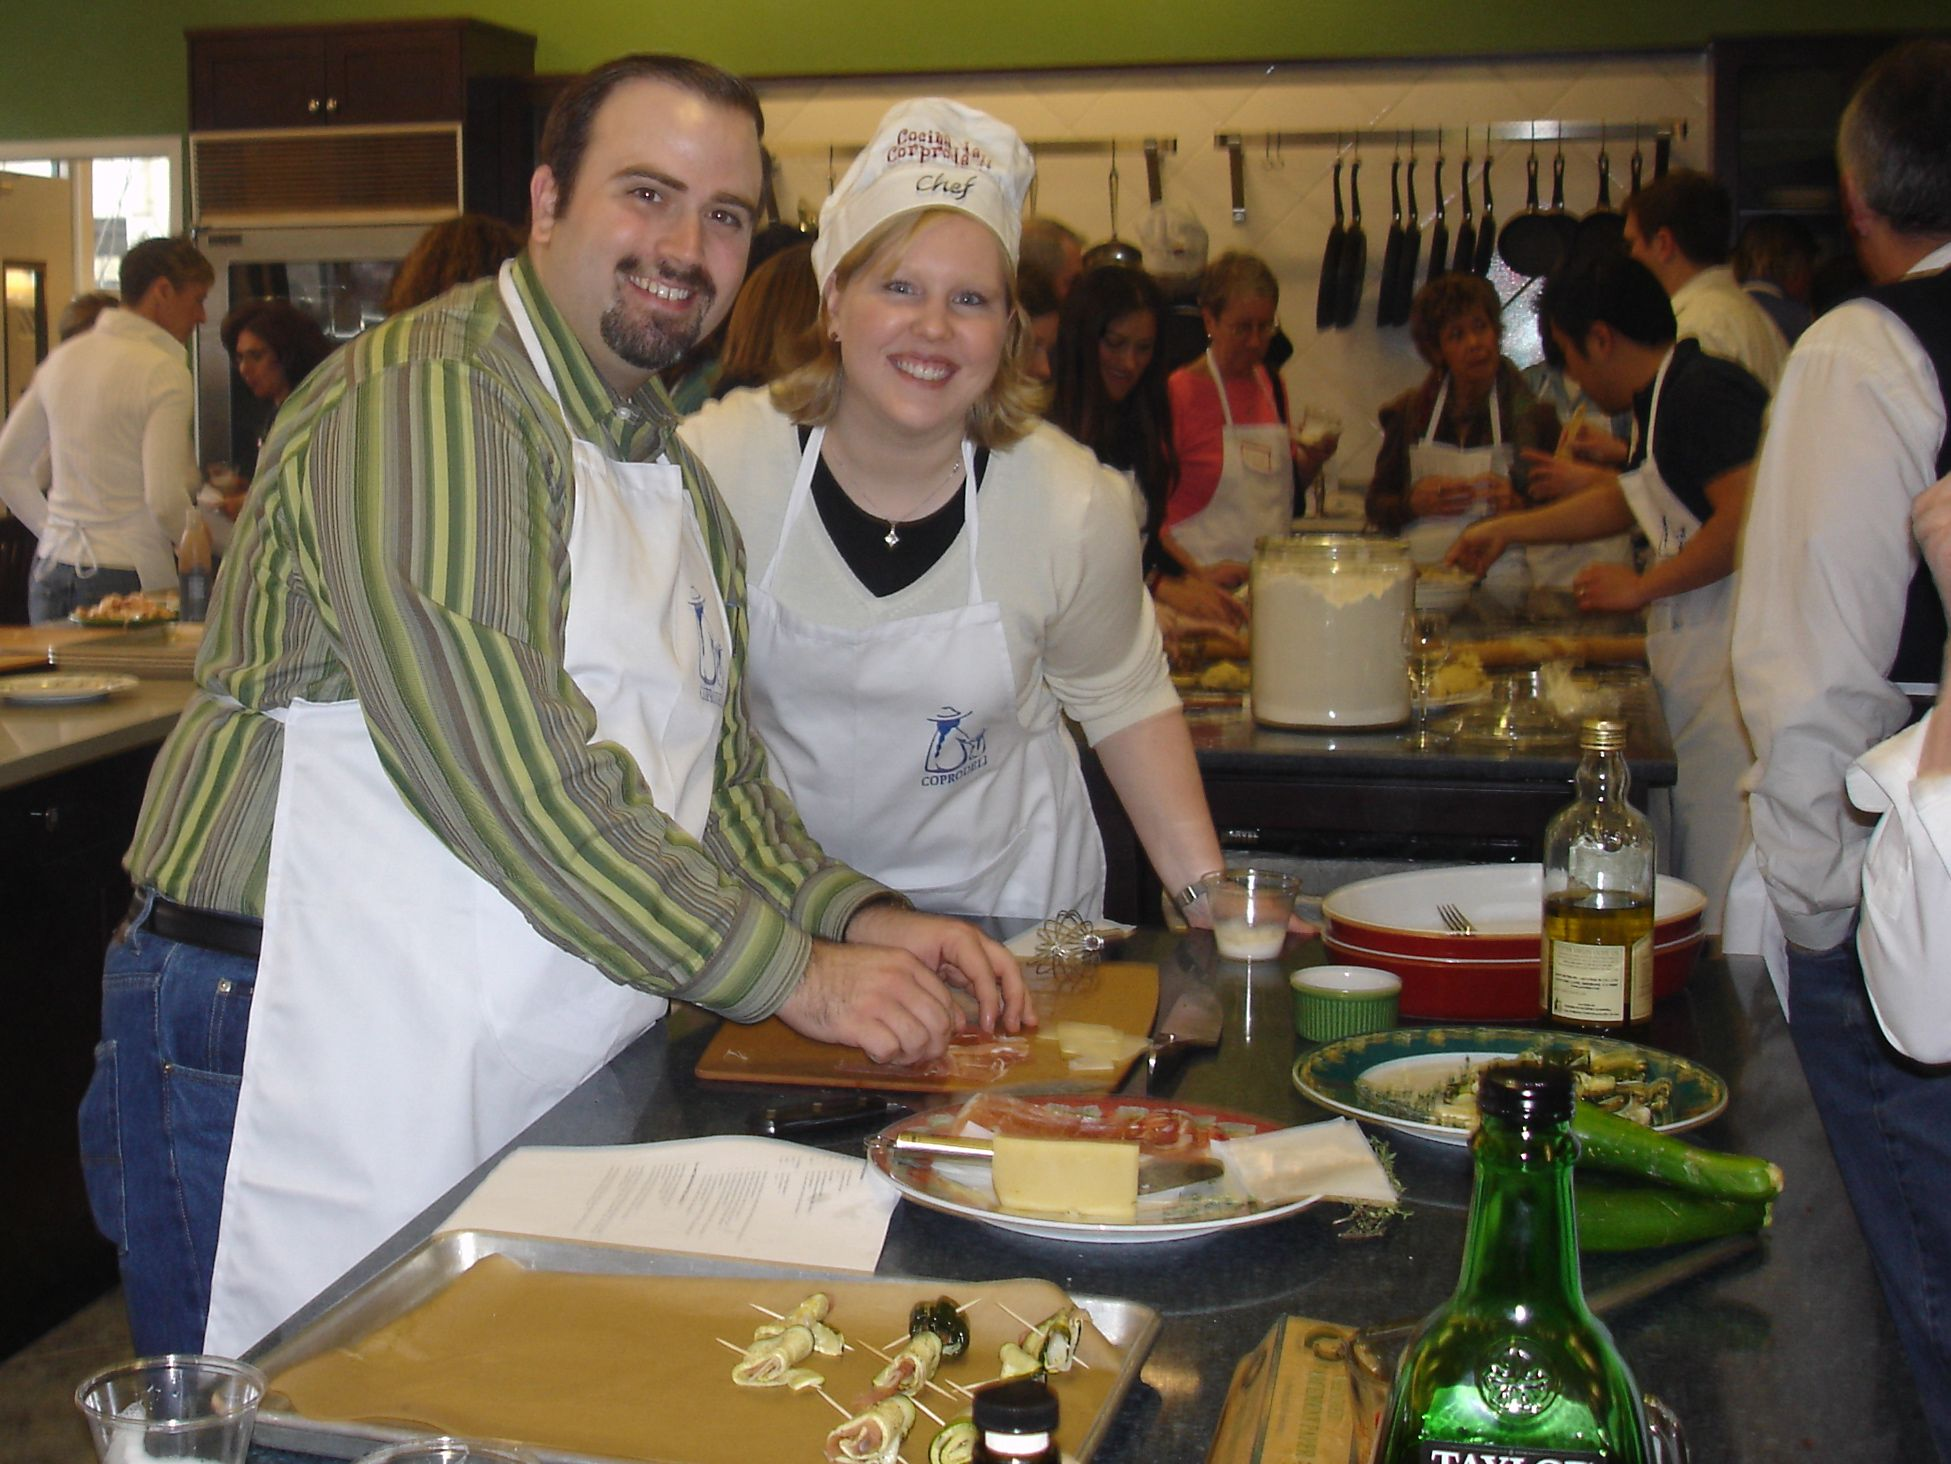 Cooking with my husband, Jeff, at the 2006 Coprodeli fundraising event at the Merchandise Mart.